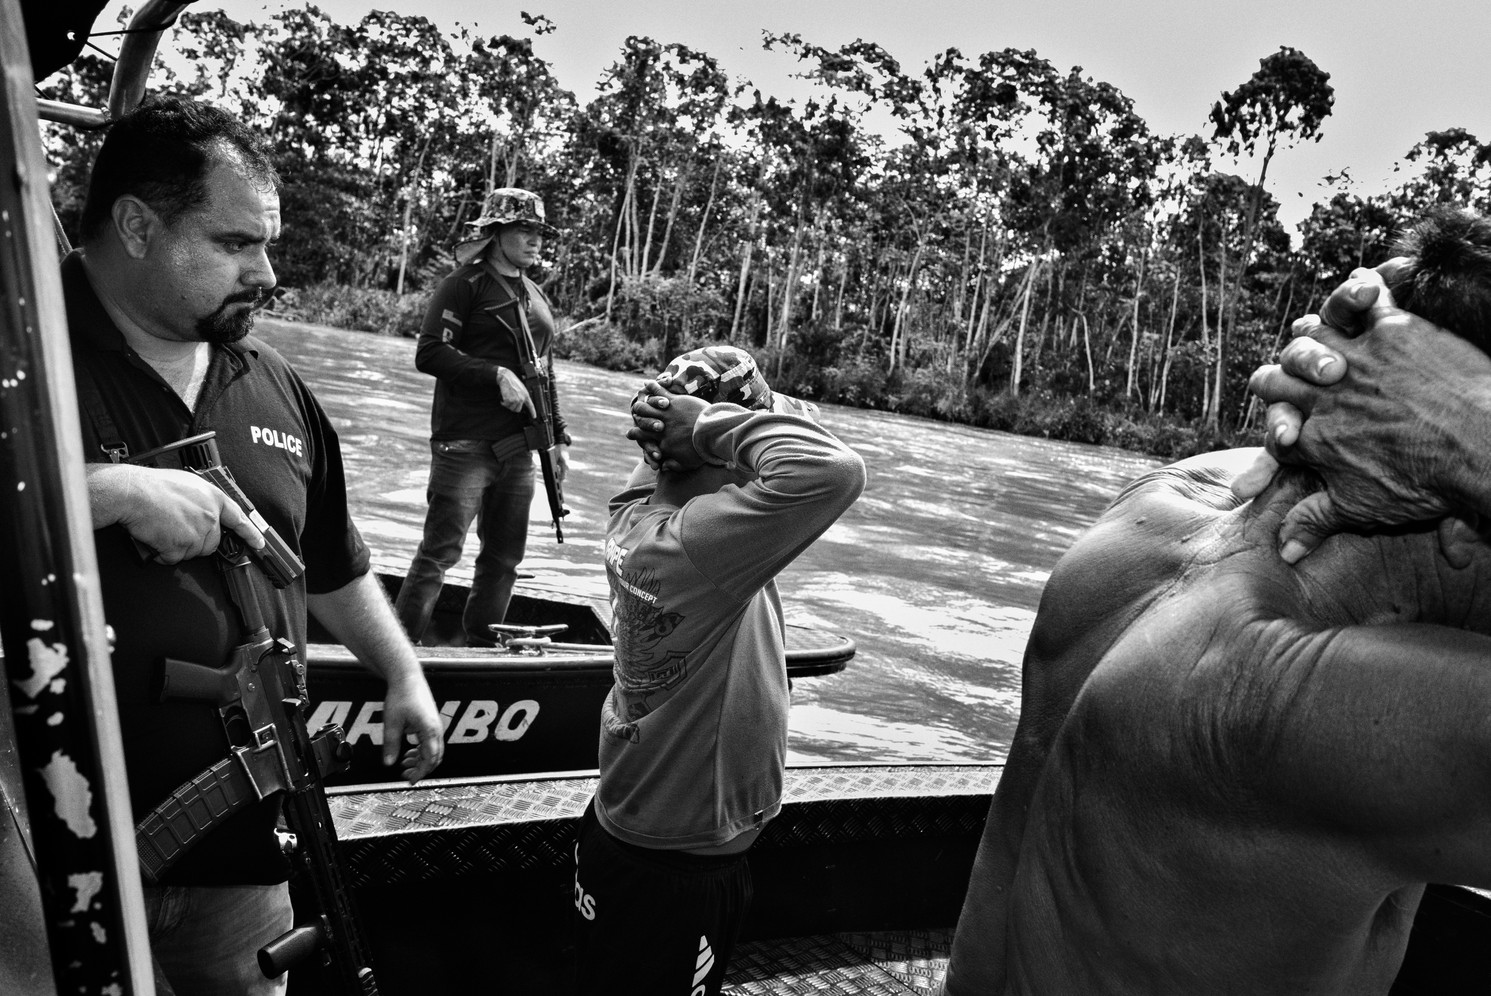 Police from Amazonas state drug squad stop a boat while on patrol on the Solimões River which in the last decade has become a major trafficking route for cocaine consumed in Brazil and sent abroad to Europe. Much of the illicit cargo arrives in Manaus via small fishing boats. In recent years, dissident members of Colombia's Forças Armadas Revolucionárias (FARC) have started working as mercenaries, protecting cargoes against armed river pirates.